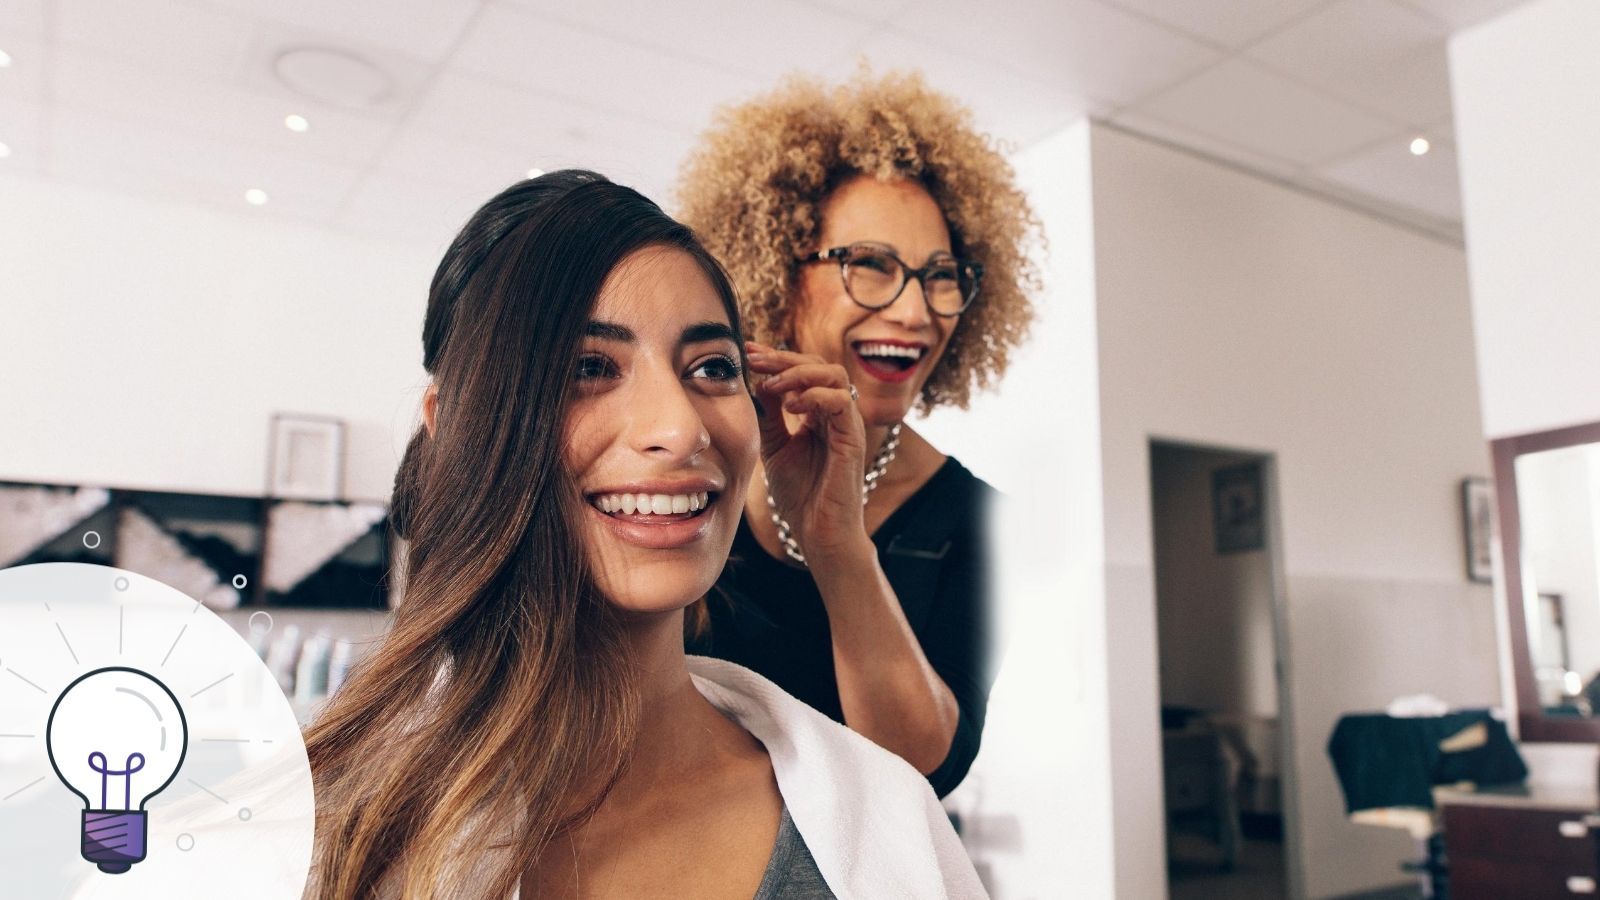 How to Make More Money as a Hairstylist: 7 Tips To Get More Value For Your Efforts